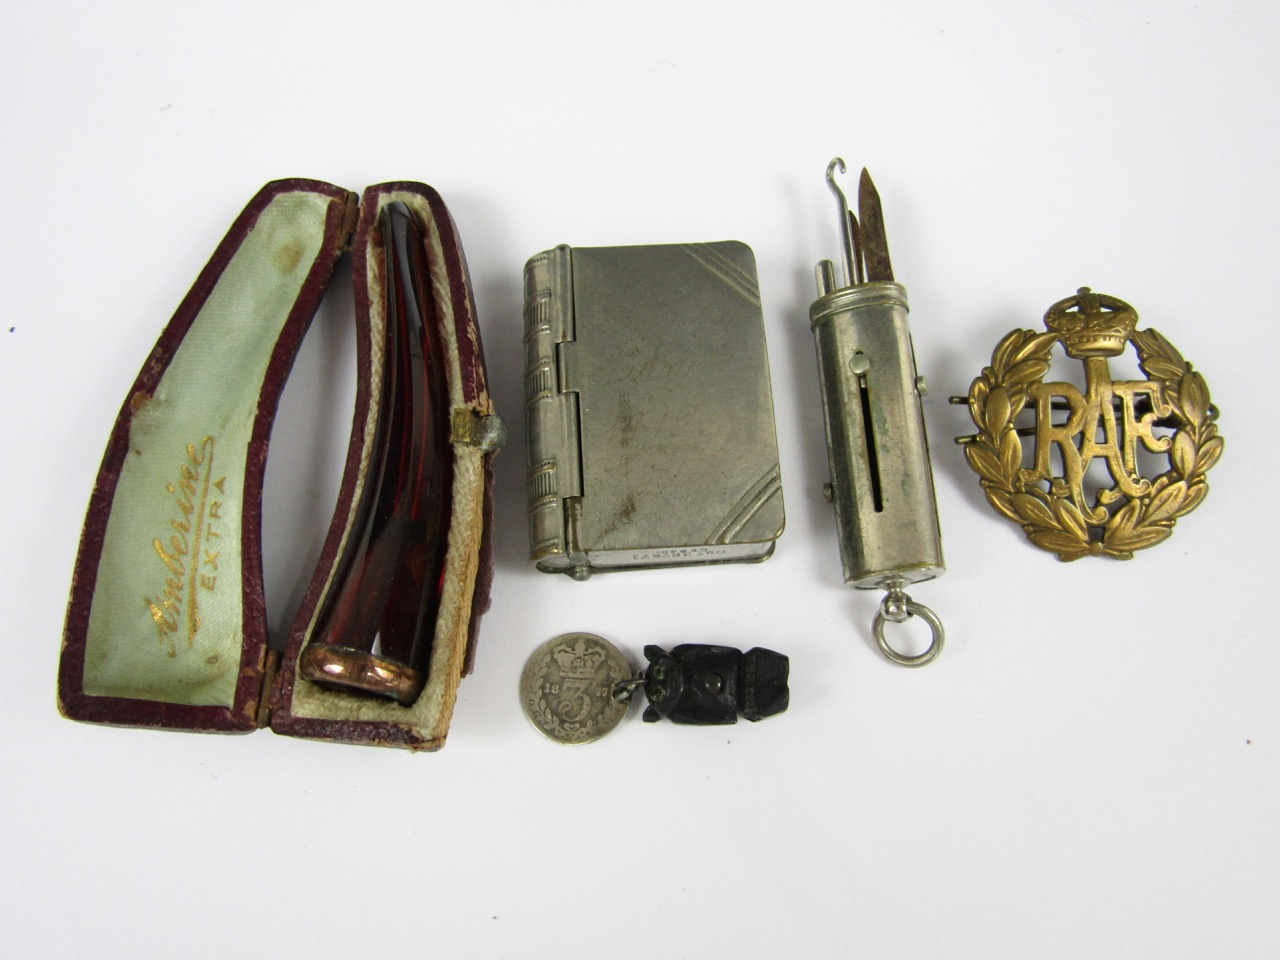 Lot 46 - Sundry collectors' items including an RAF cap badge, Vesta case, fob chatelaine necessaire, and